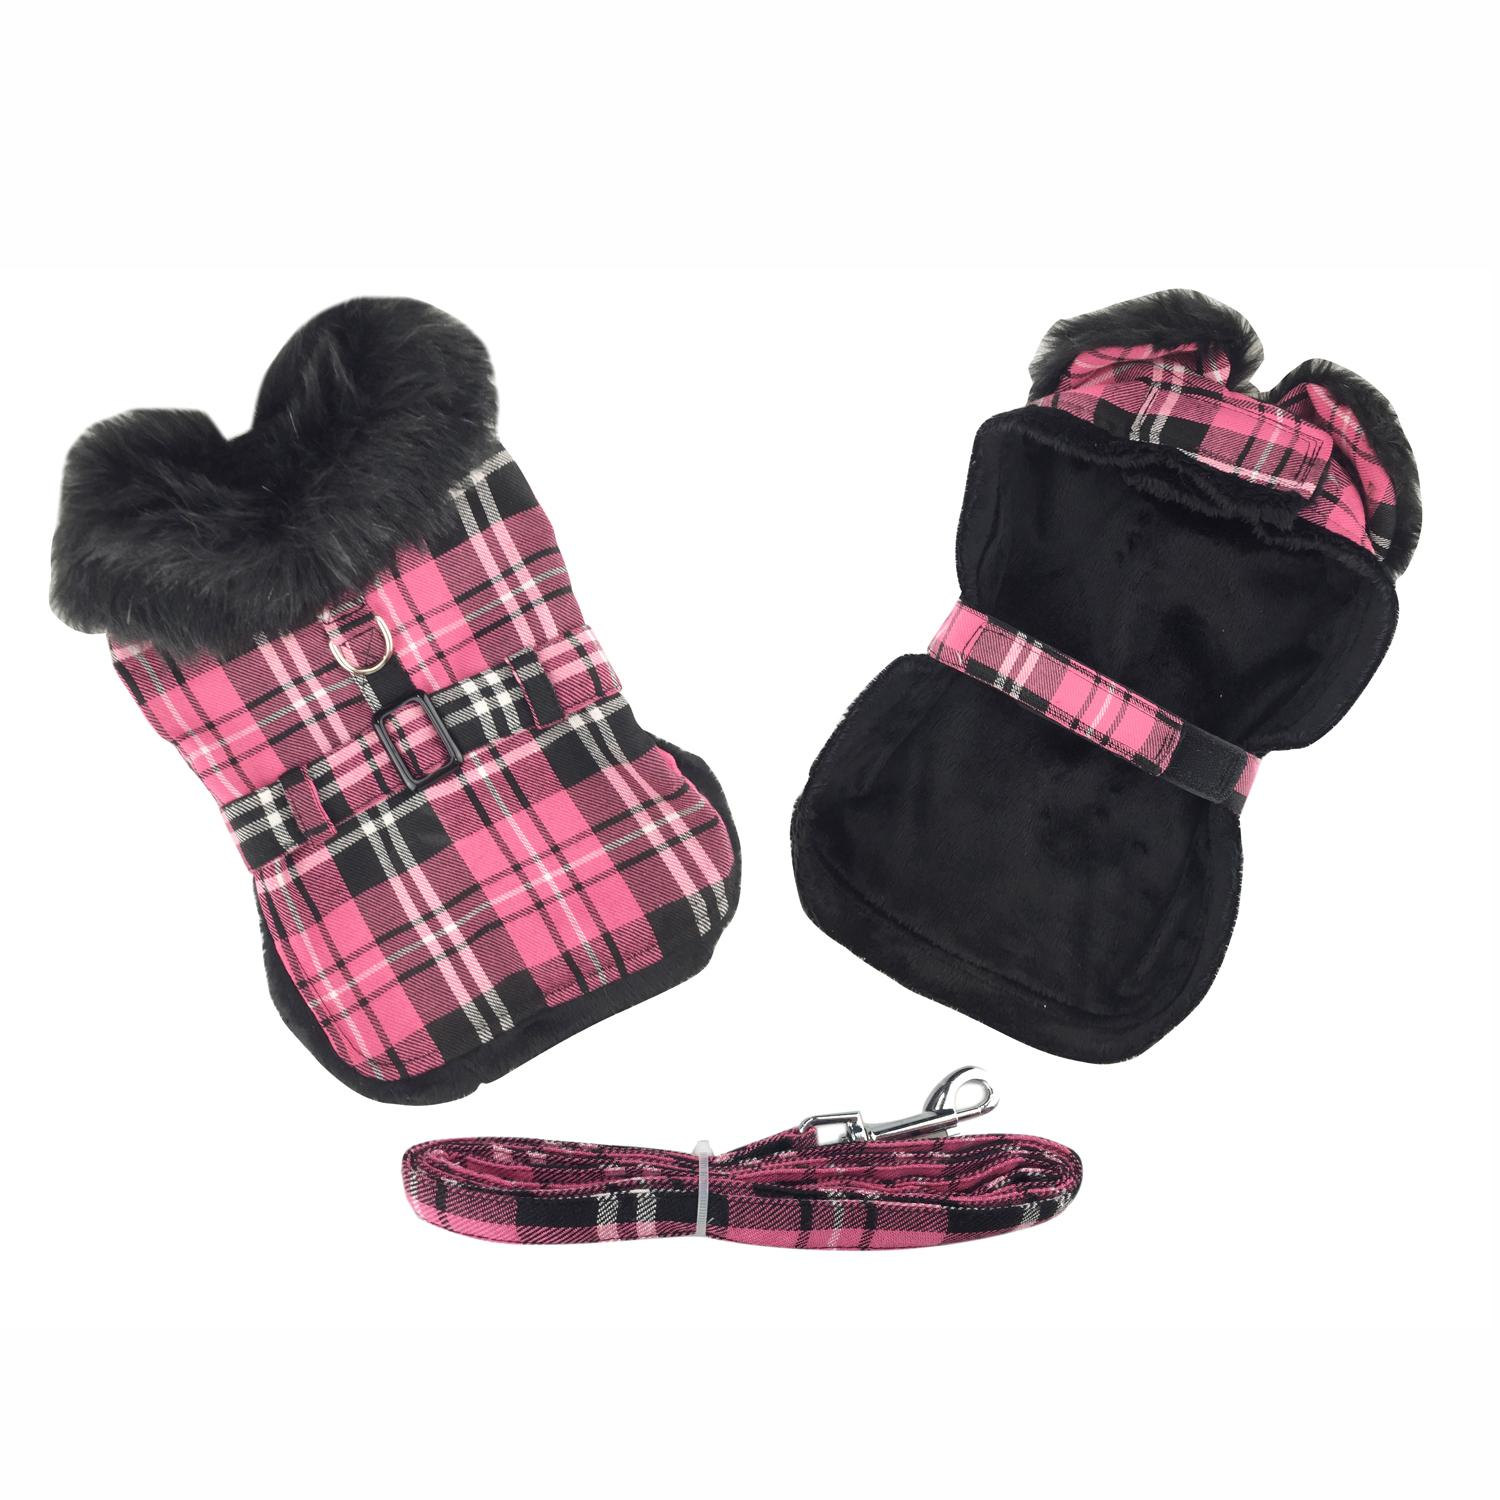 Doggie Design Designer Dog Coat Harness with Matching Leash, Hot Pink Plaid with Black Fur, XX-Large